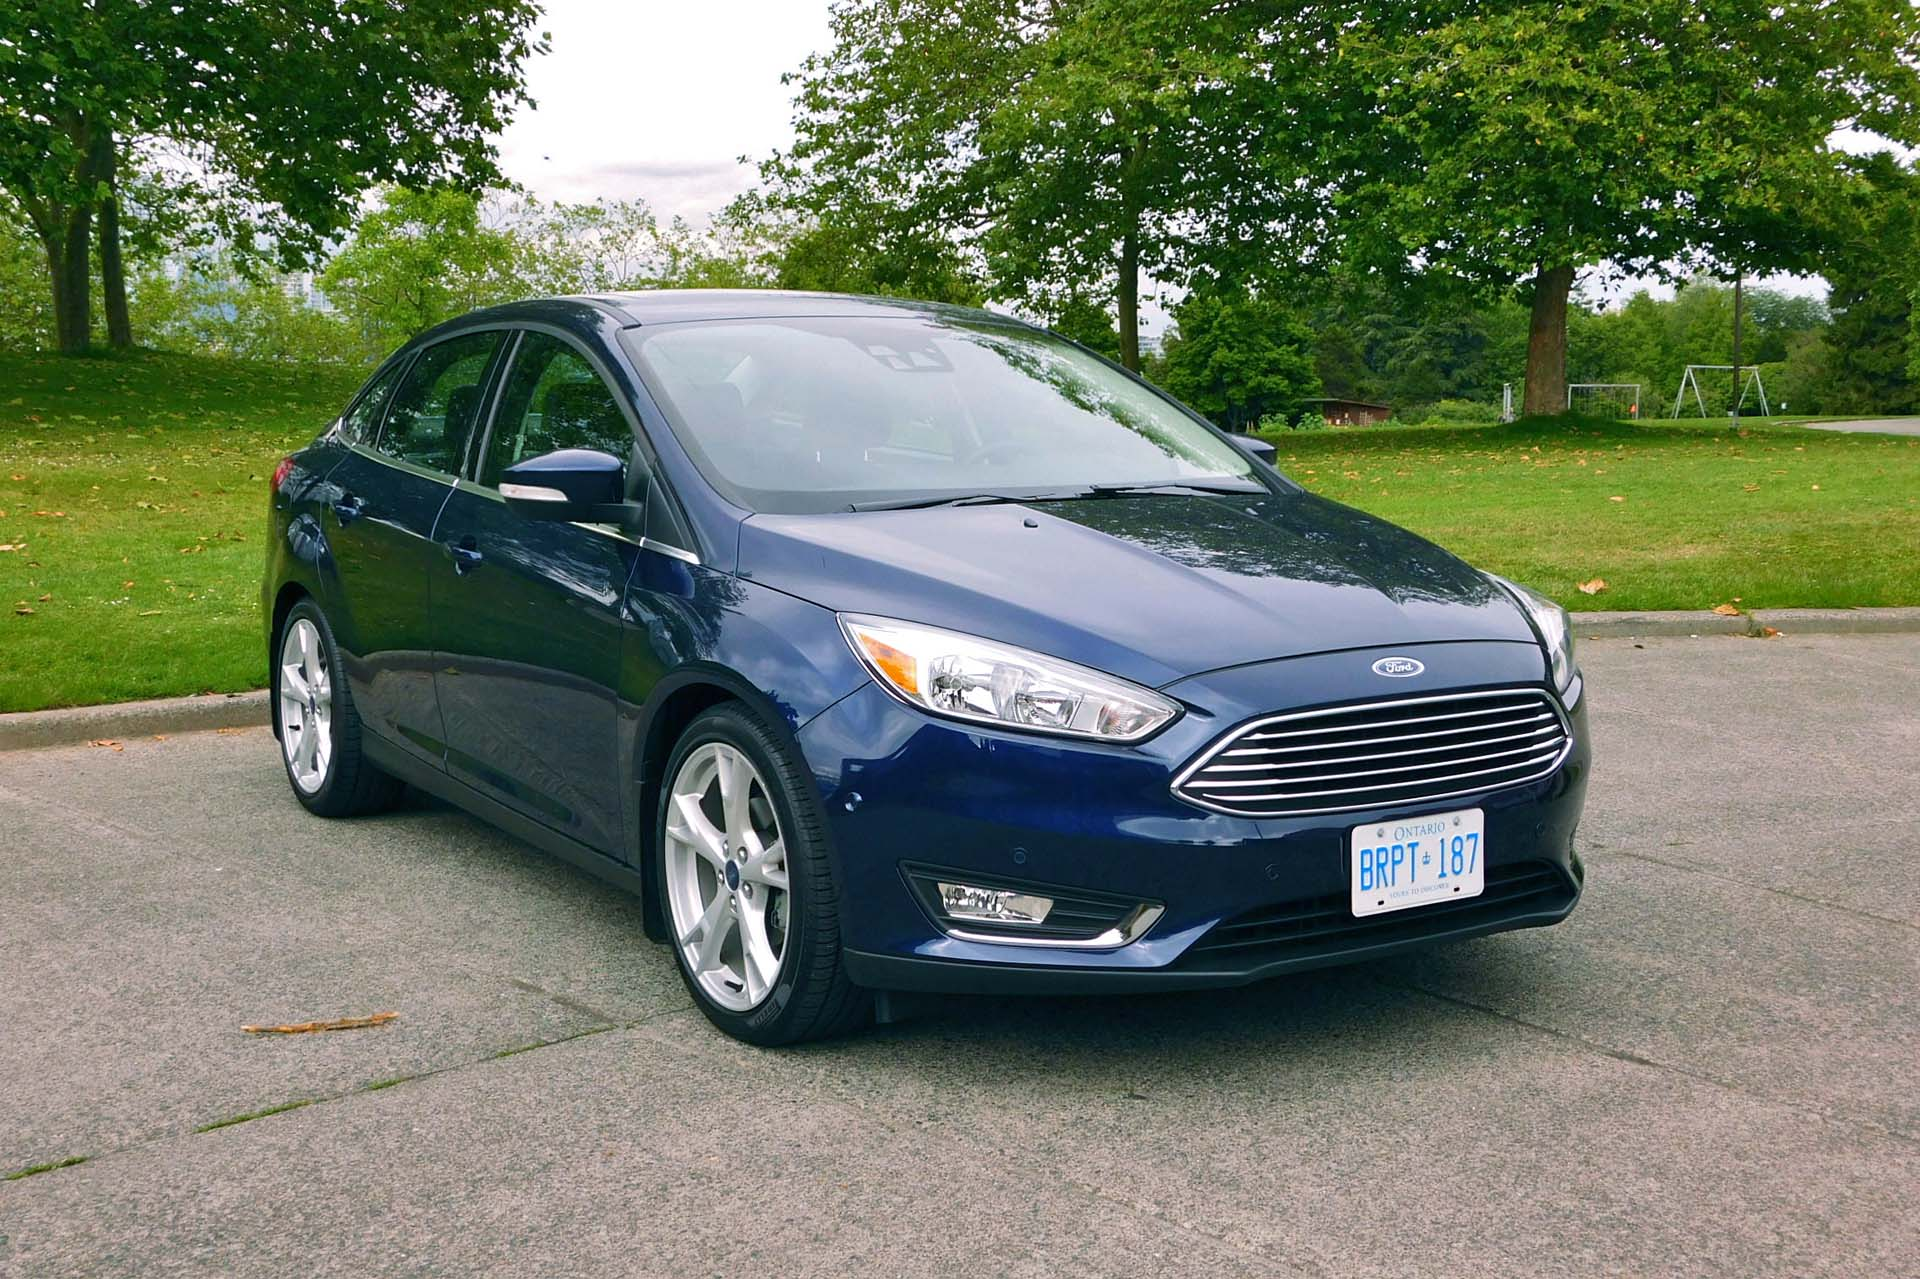 2016 ford focus titanium. Black Bedroom Furniture Sets. Home Design Ideas